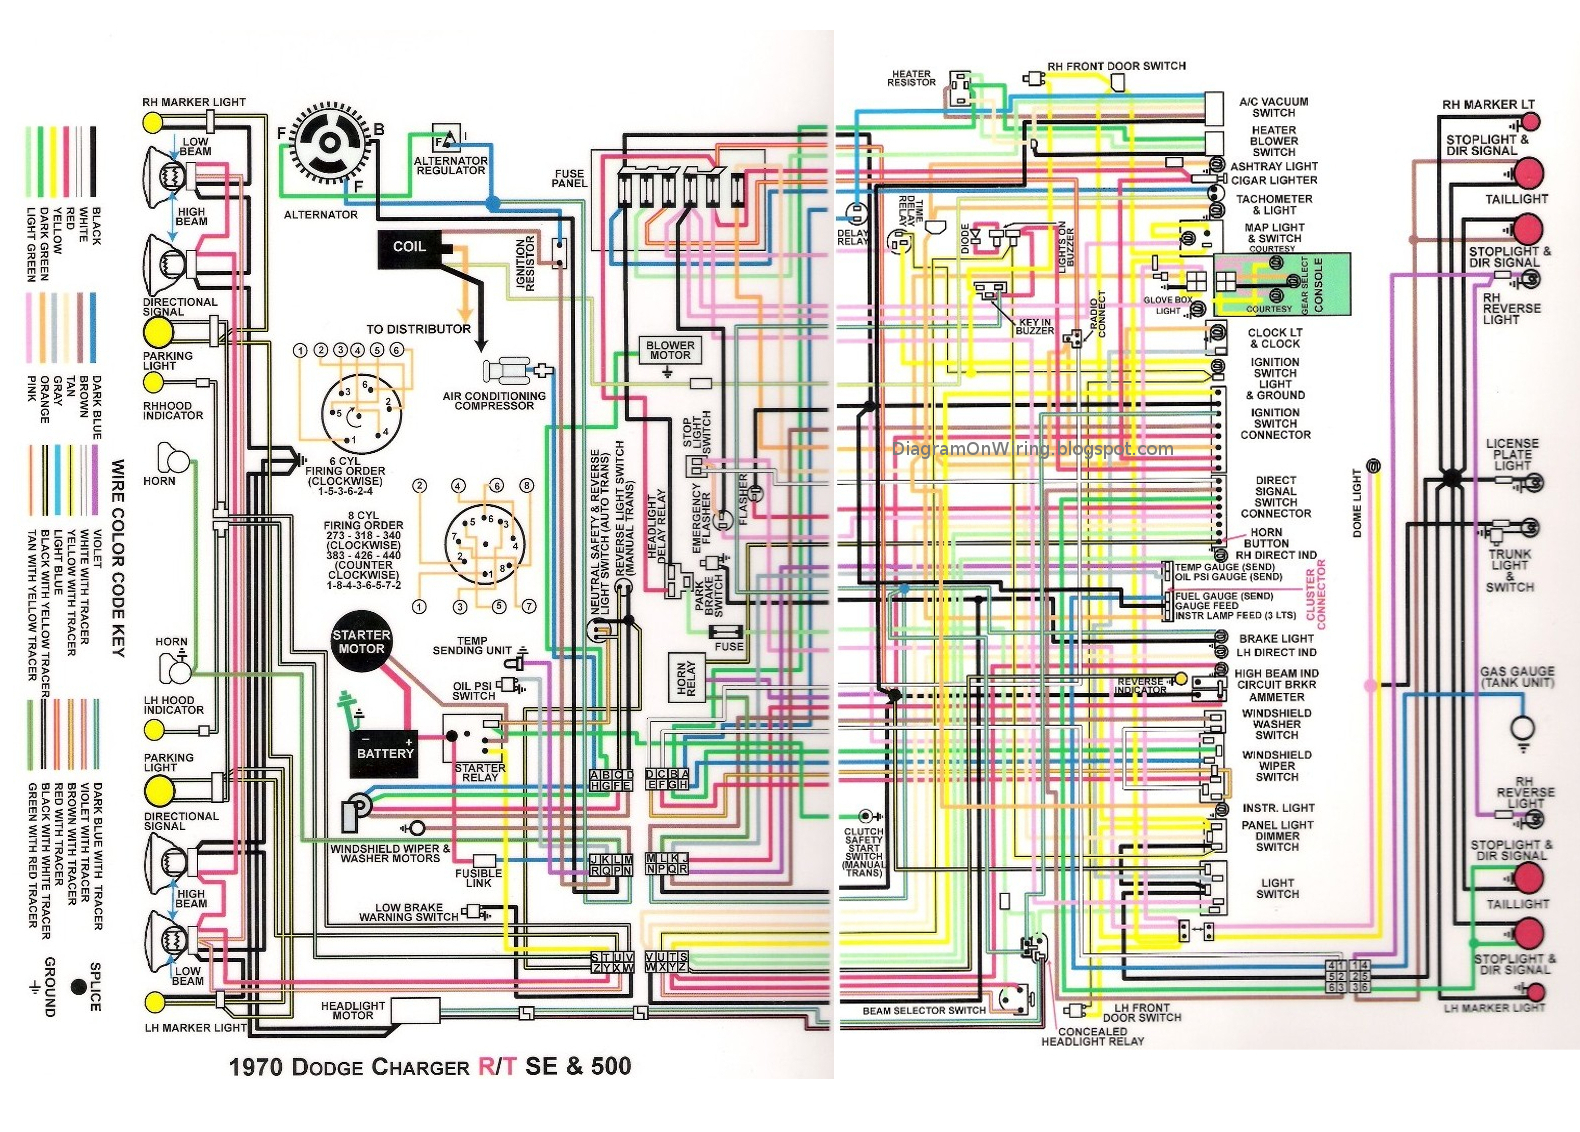 Complete+Wiring+Diagram+for+1970+Dodge+Charger+RT+SE+and+50 72 c10 wiring diagram 64 c10 wiring diagram \u2022 free wiring diagrams  at alyssarenee.co